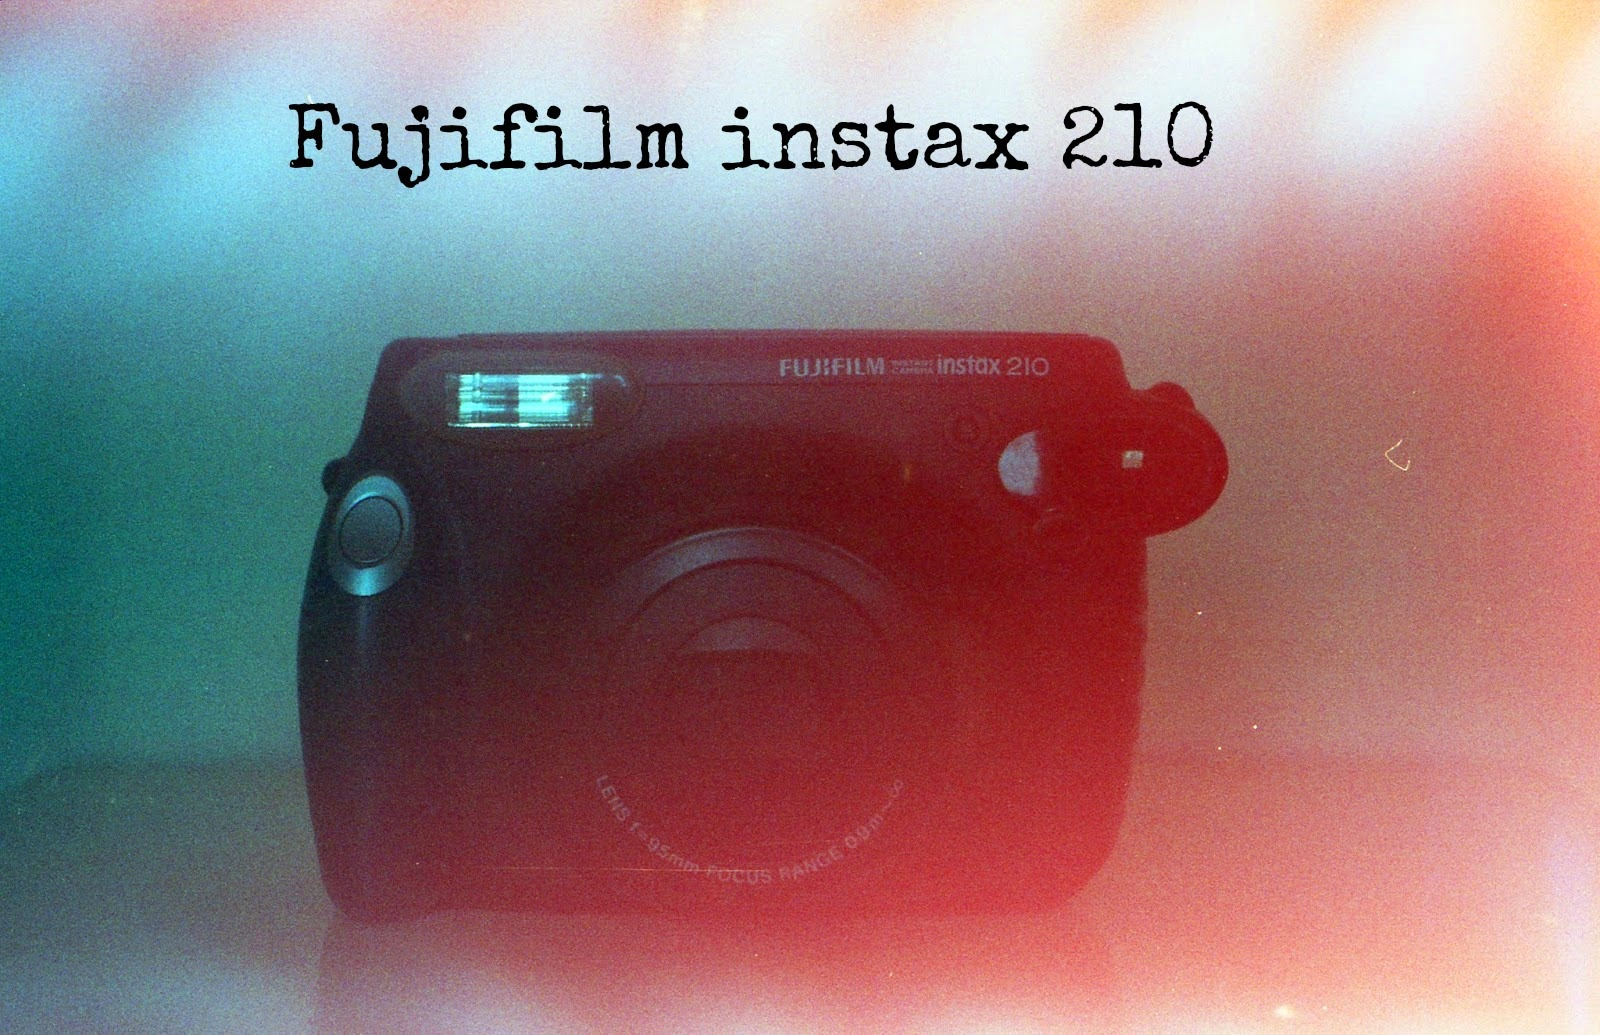 http://talesonfilm.blogspot.co.uk/2014/04/me-and-my-instax.html